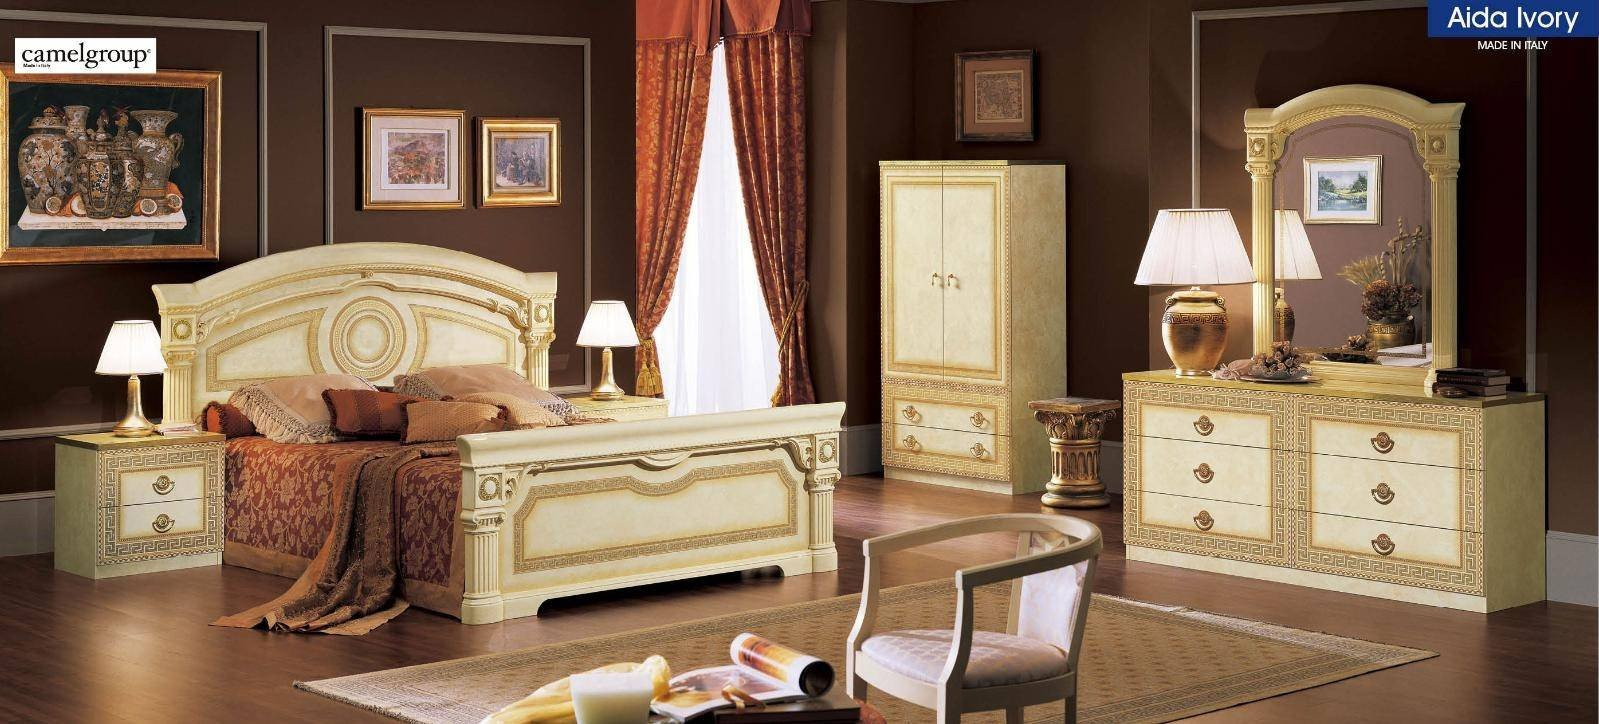 End Tables for Bedroom Lovely Esf Aida Ivory Gold Lacquer Finish Queen Bedroom Set 5ps